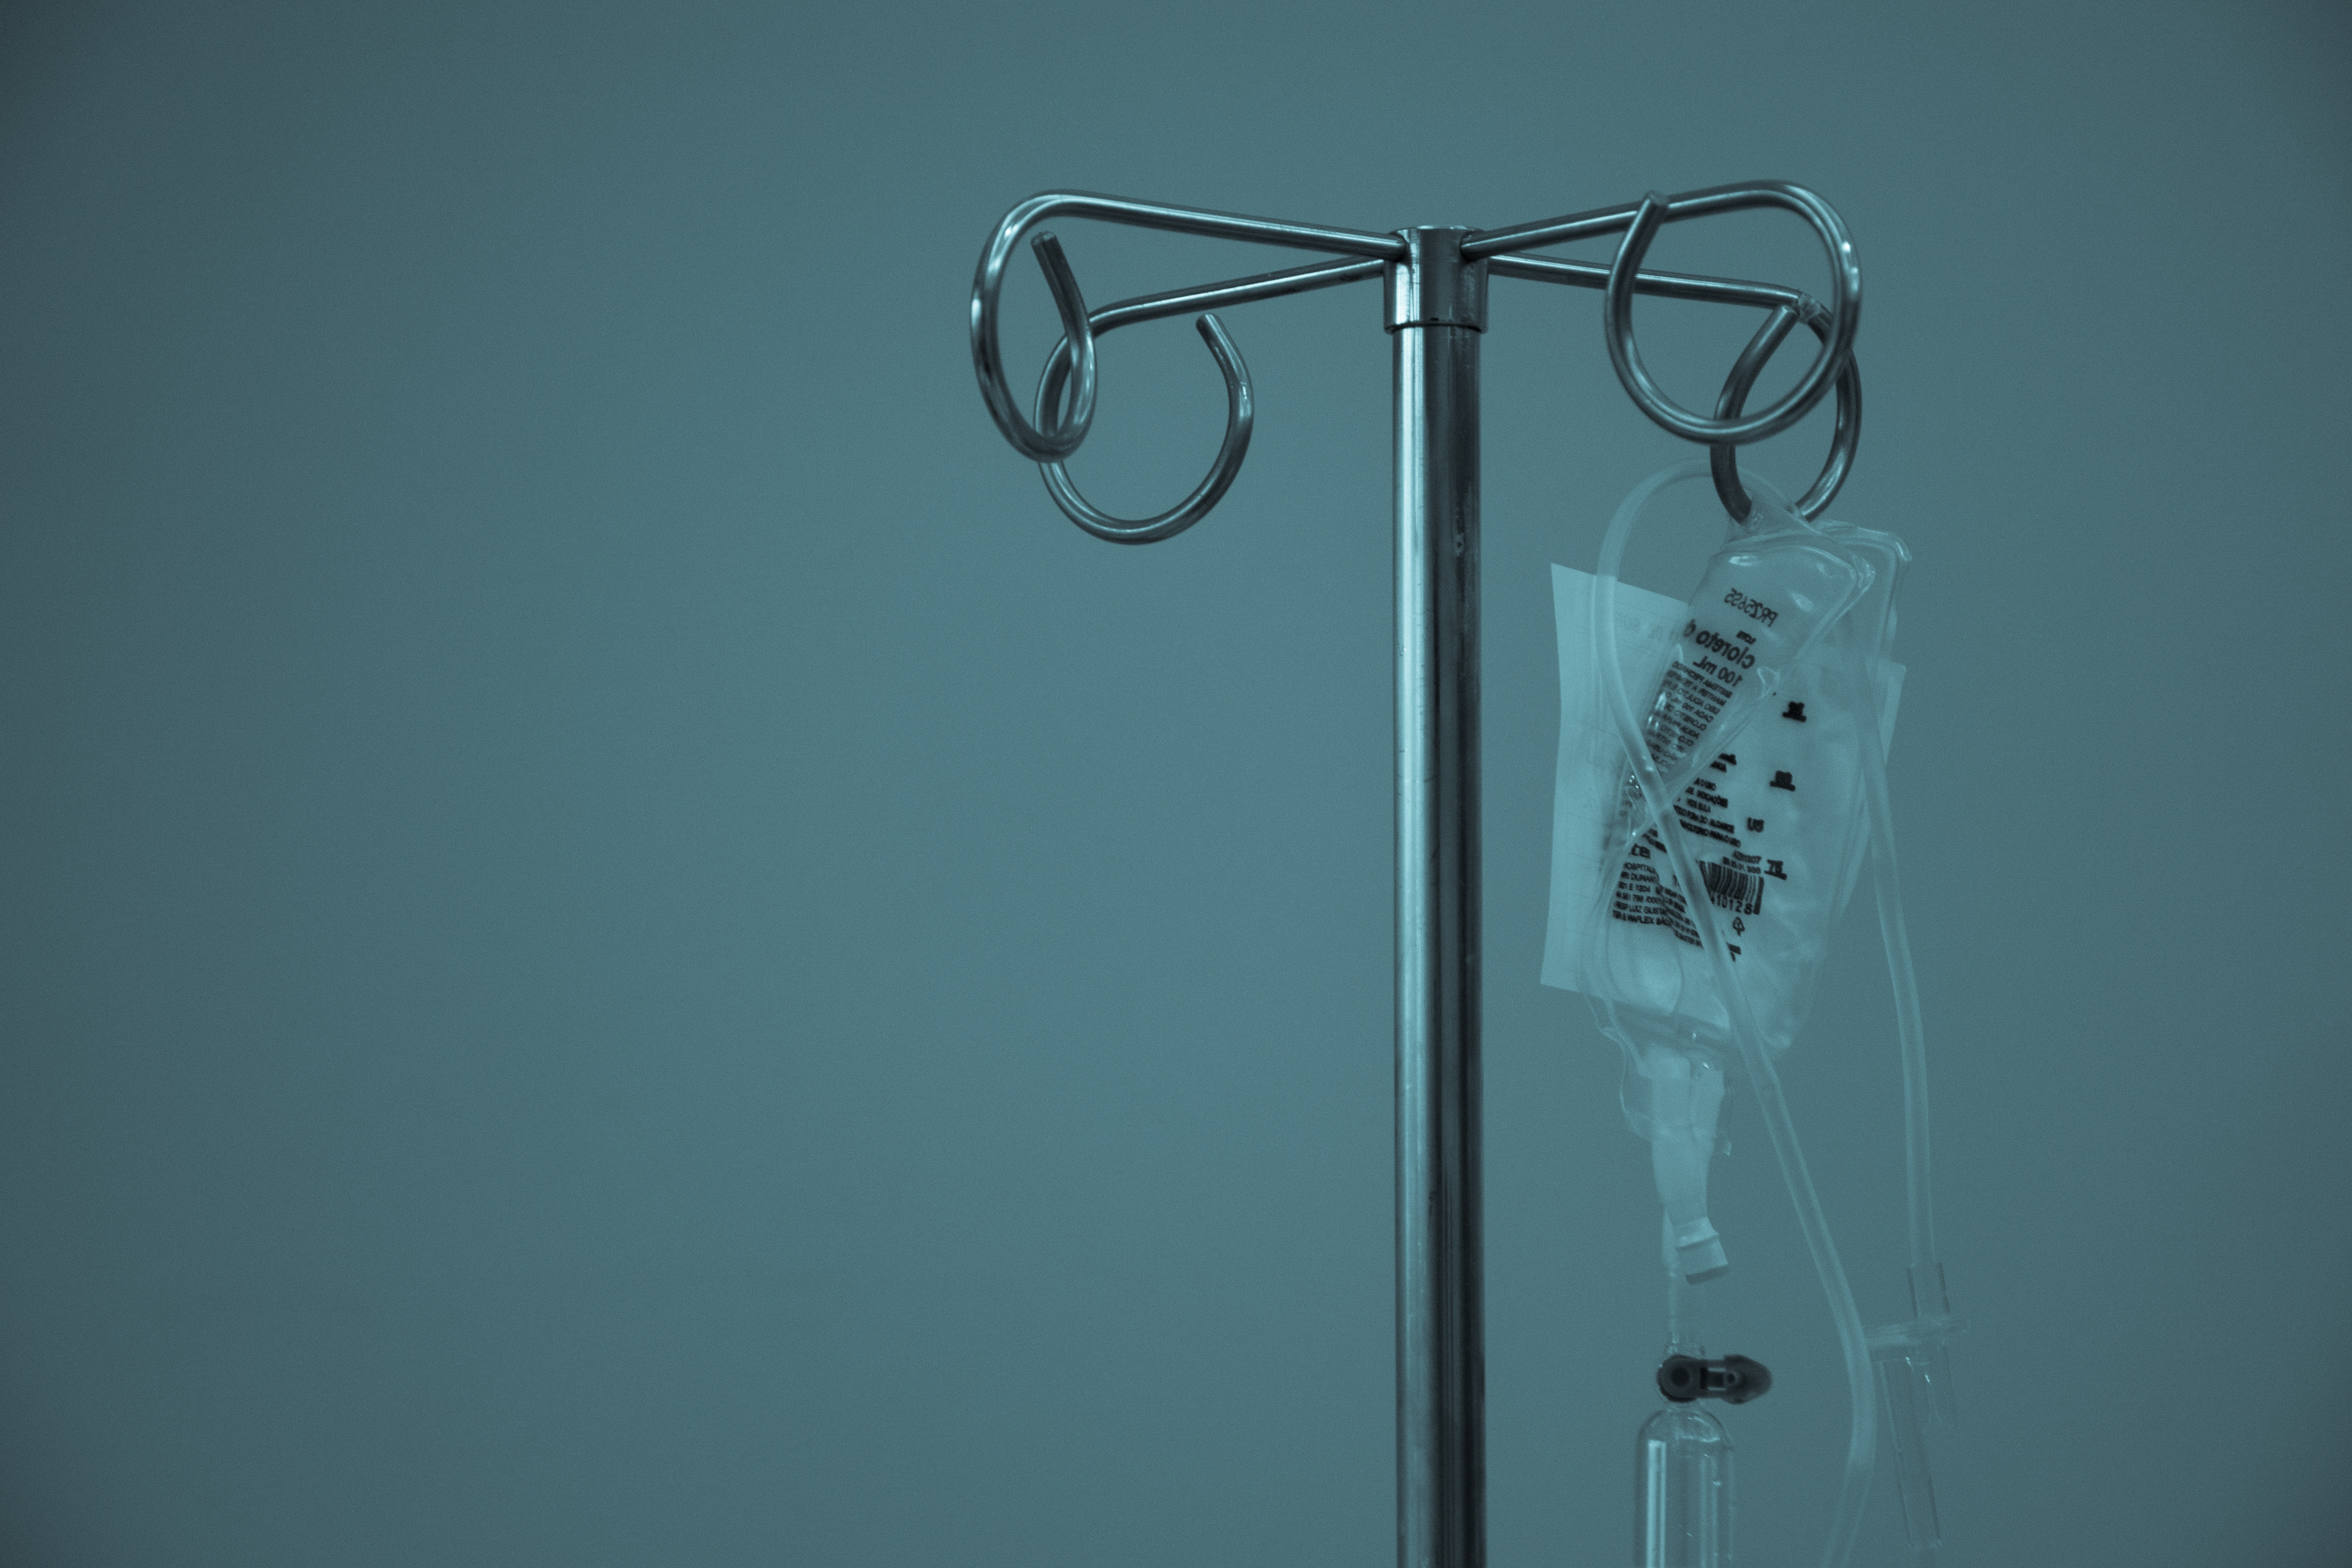 IV bag hanging from pole